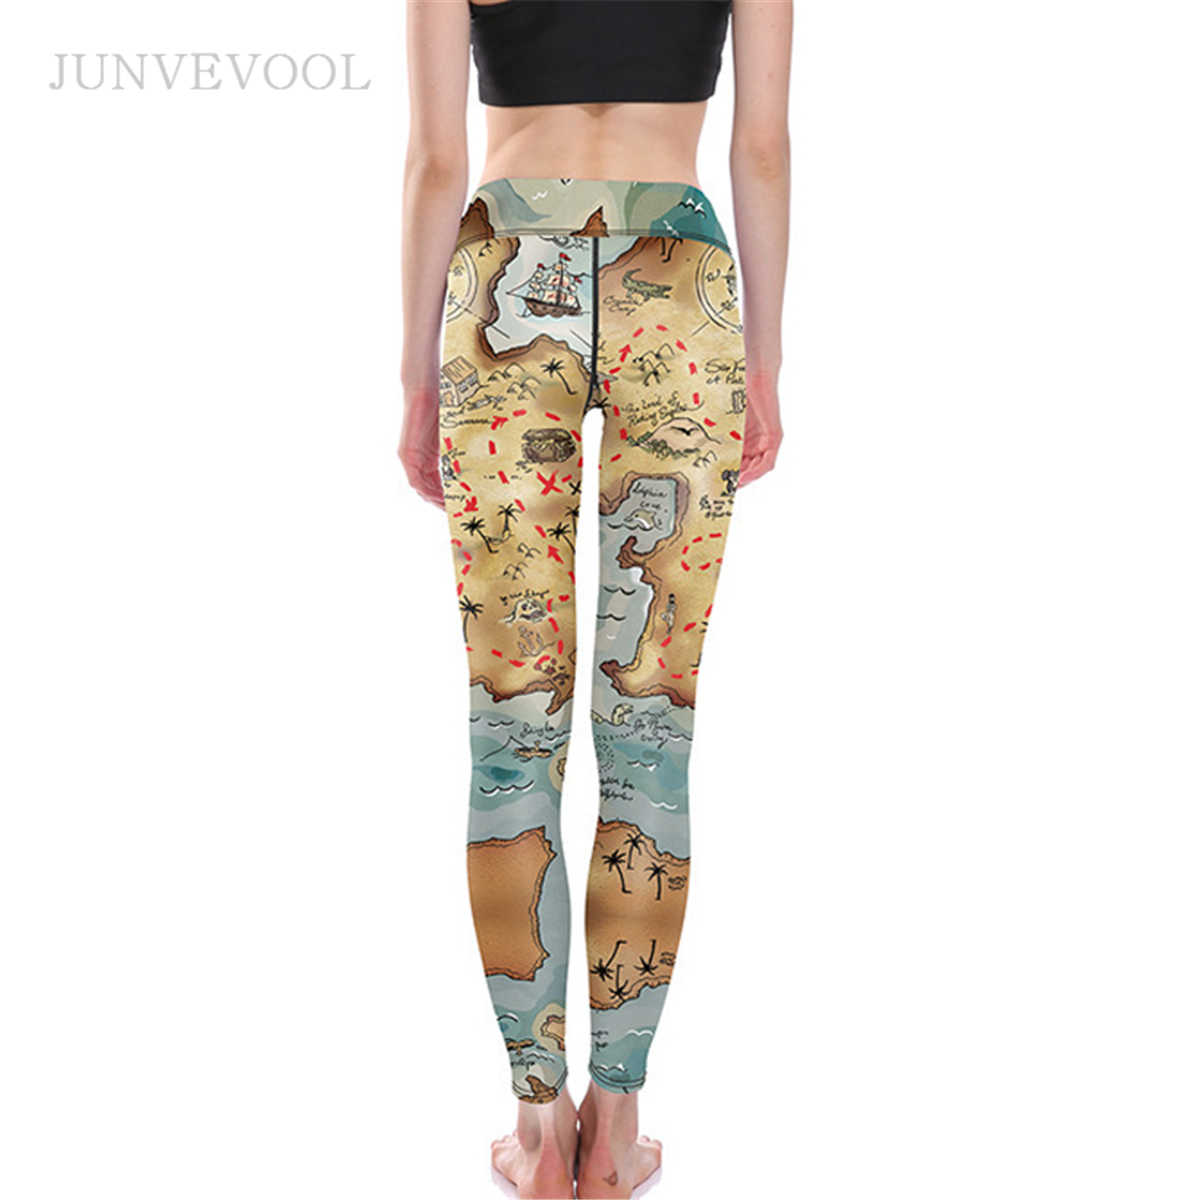 ecf3d7bb7817 ... Vintage Map Digital Printing Women Leggings Stylish Skinny Legging Work  Out Pencil Pant Ladies Vogue Fitness ...